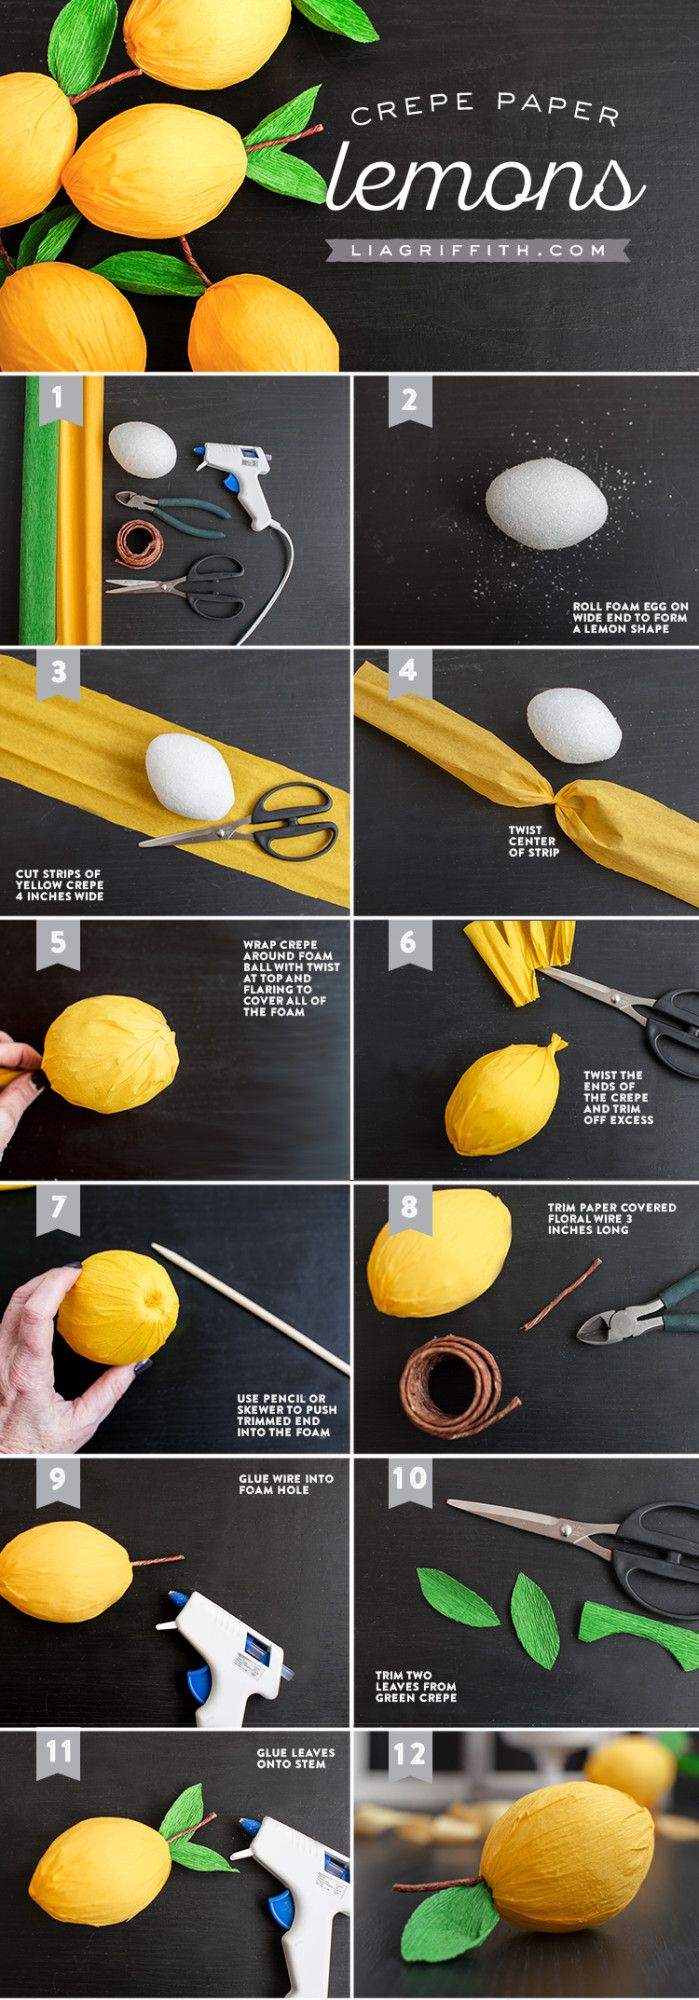 Paper covered craft wire - Diy Crepe Paper Lemons